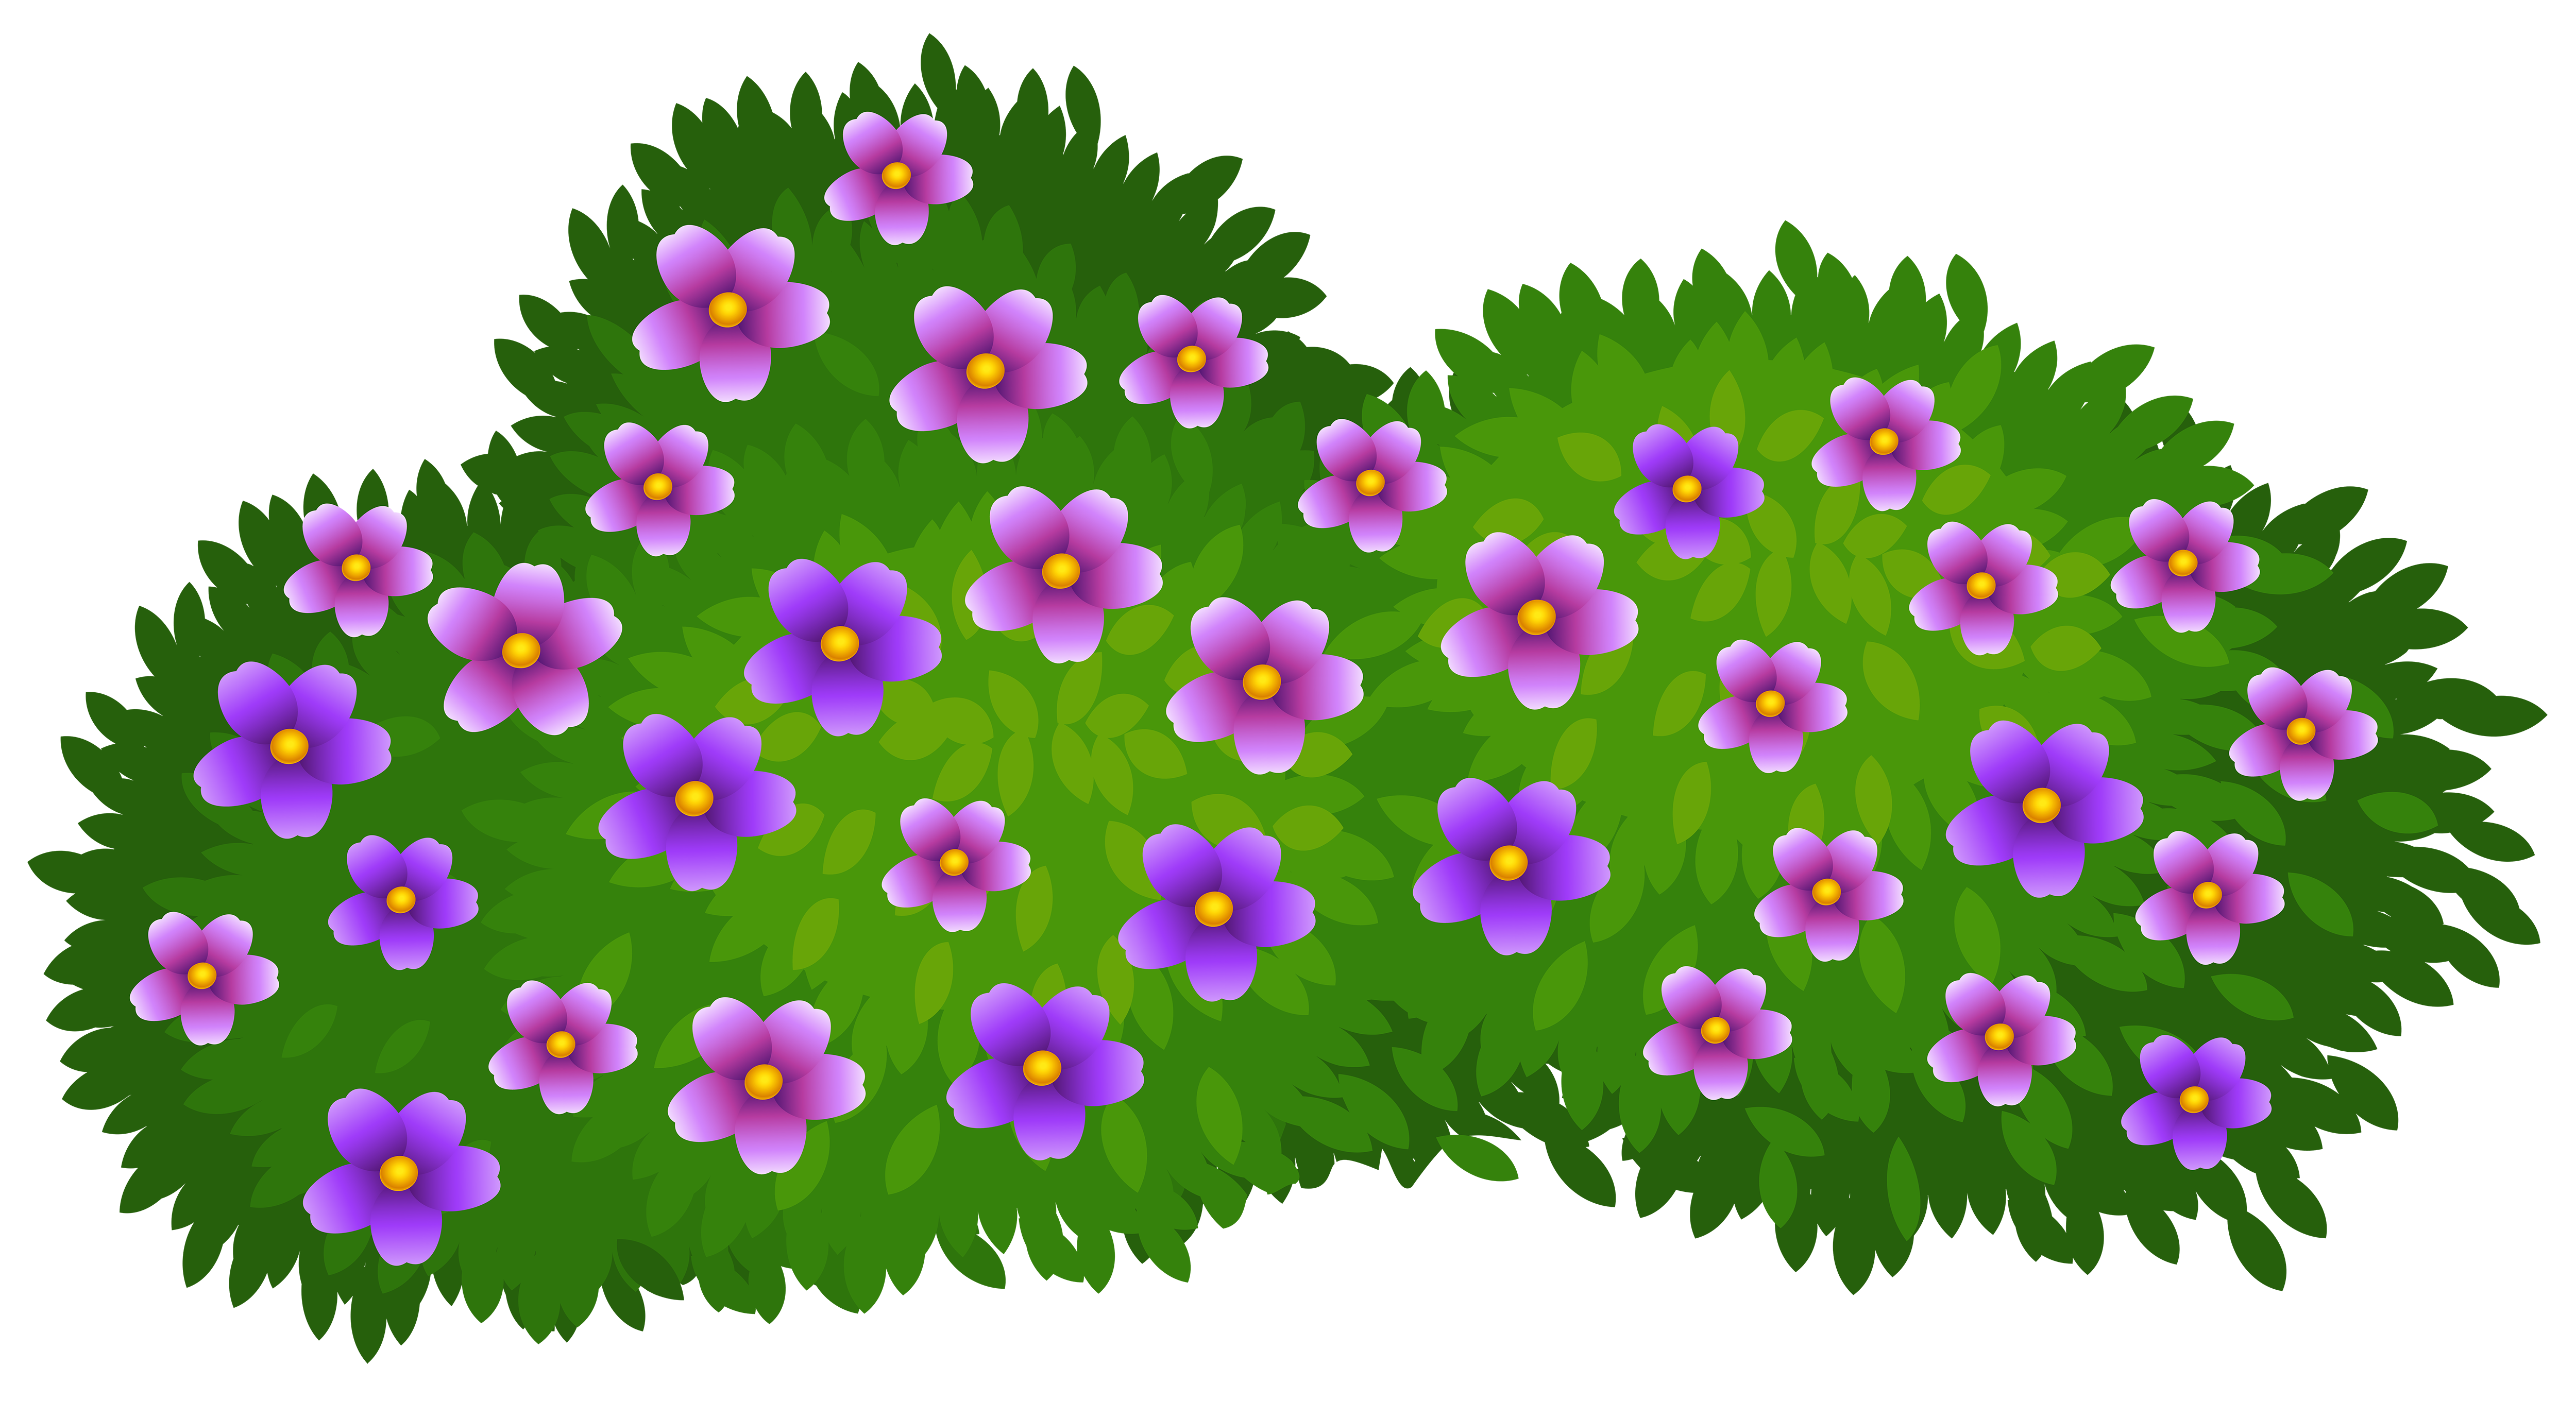 Cartoon bush png. Green with flowers transparent